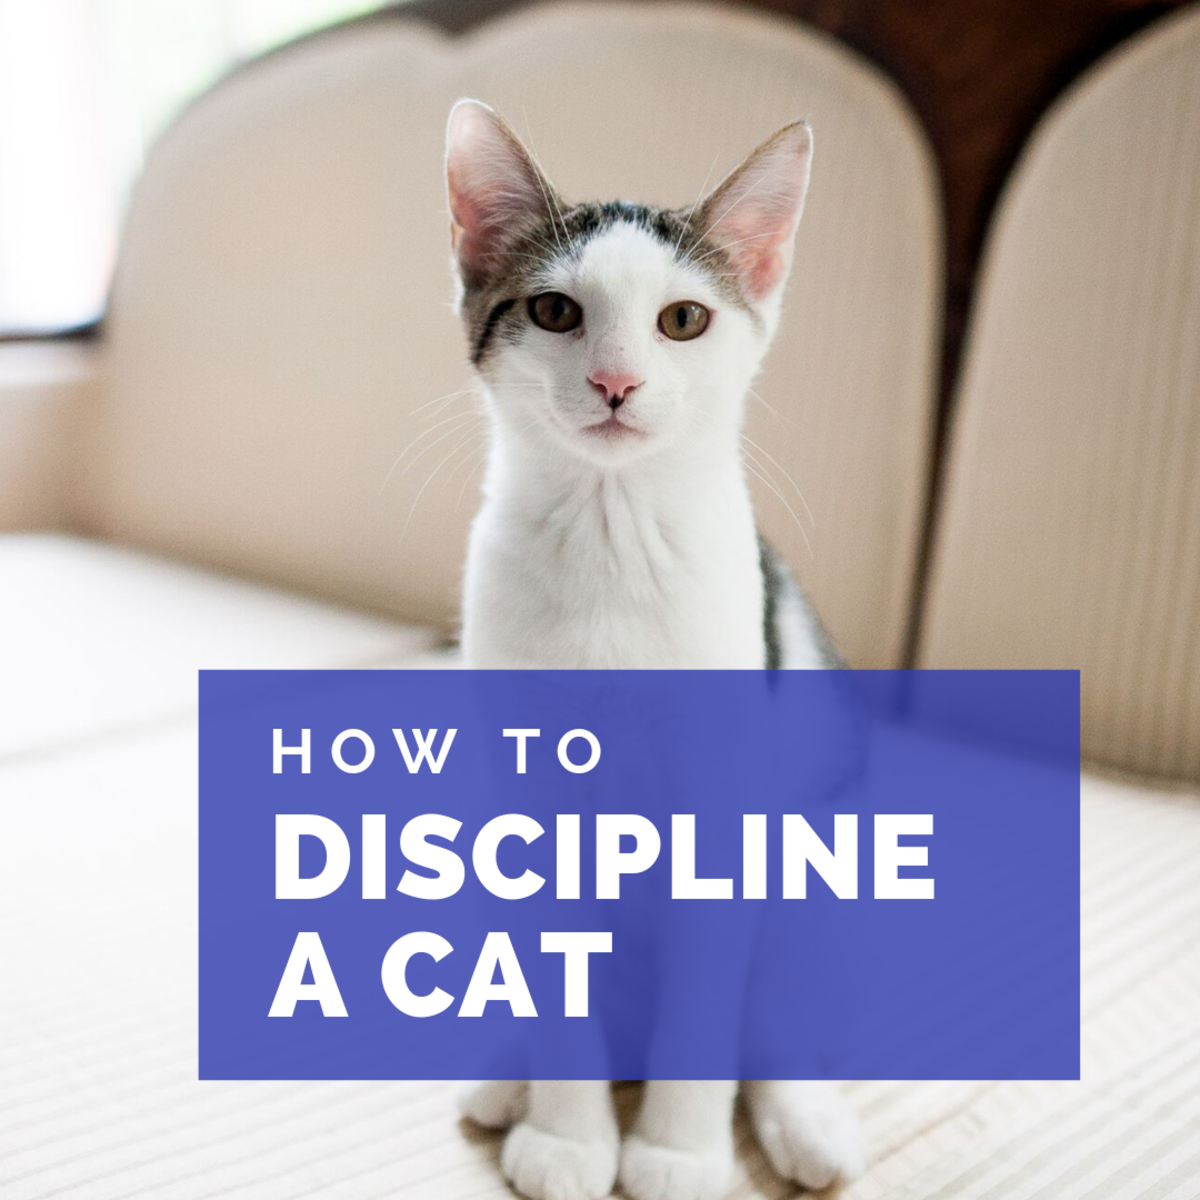 How to discipline a cat.